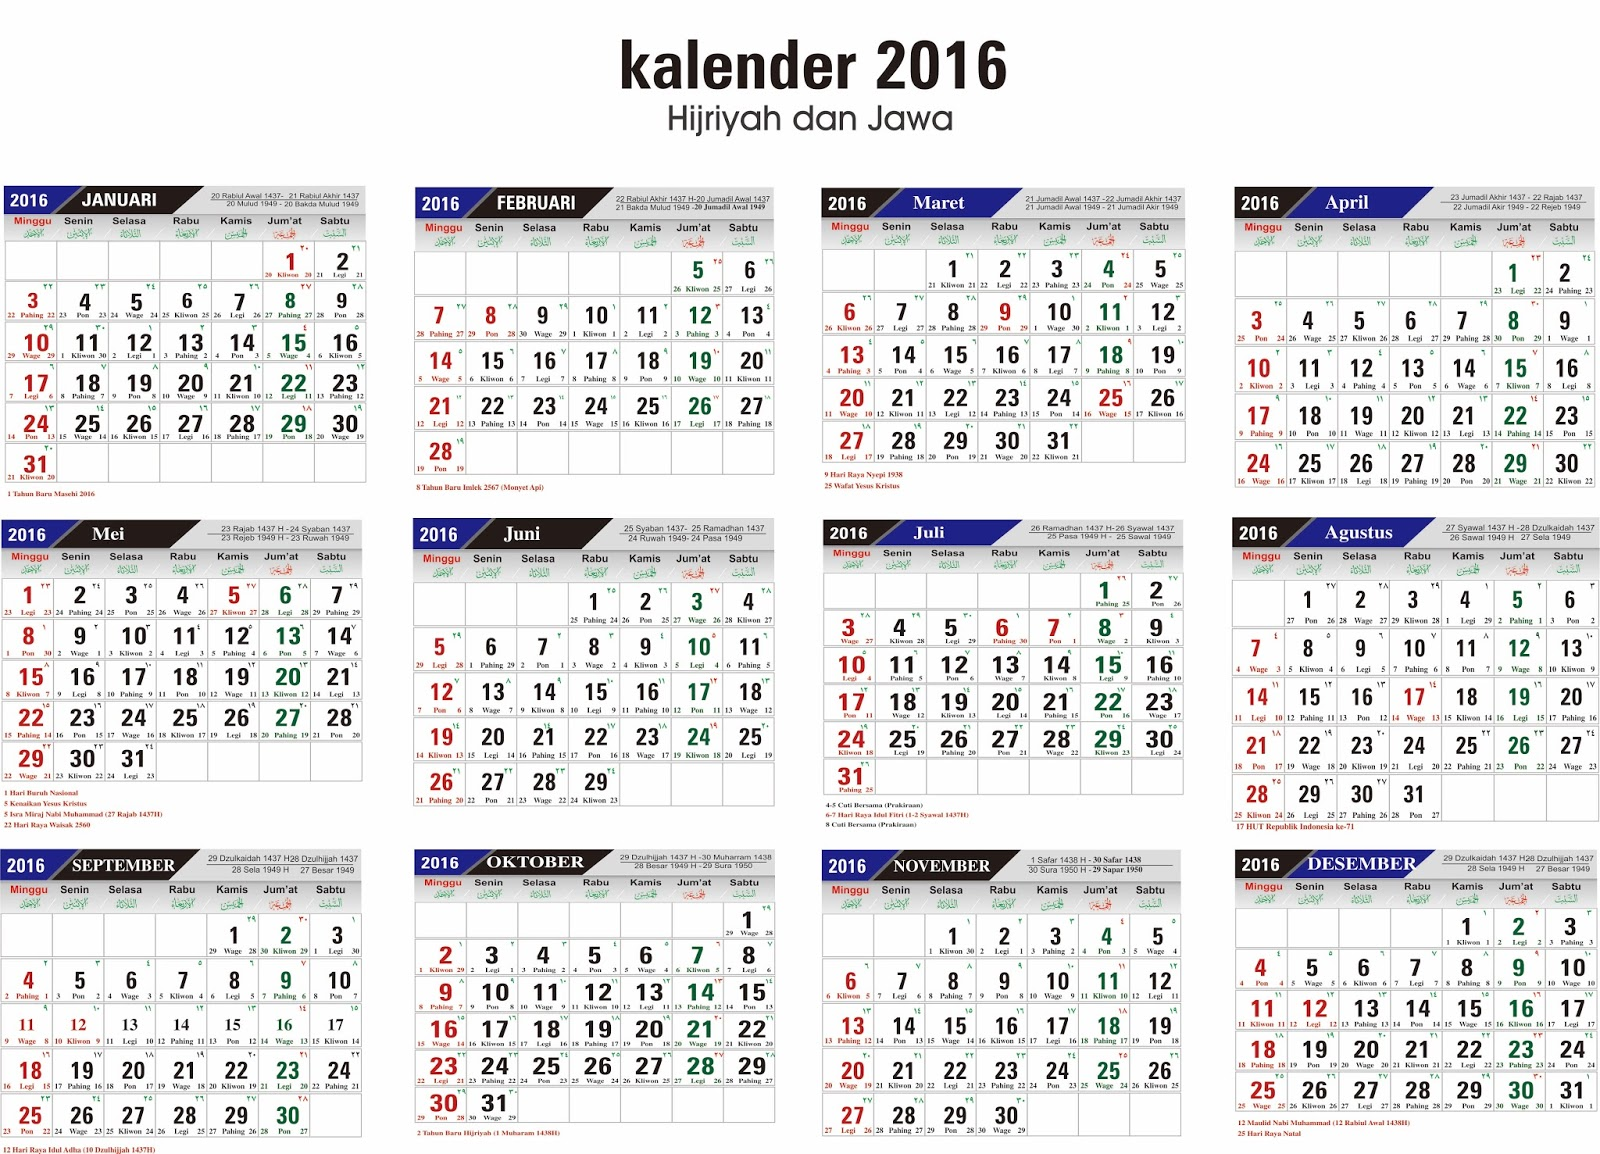 ... itu Indah: Download Template Kalender 2016 Lengkap Format CDR Editable